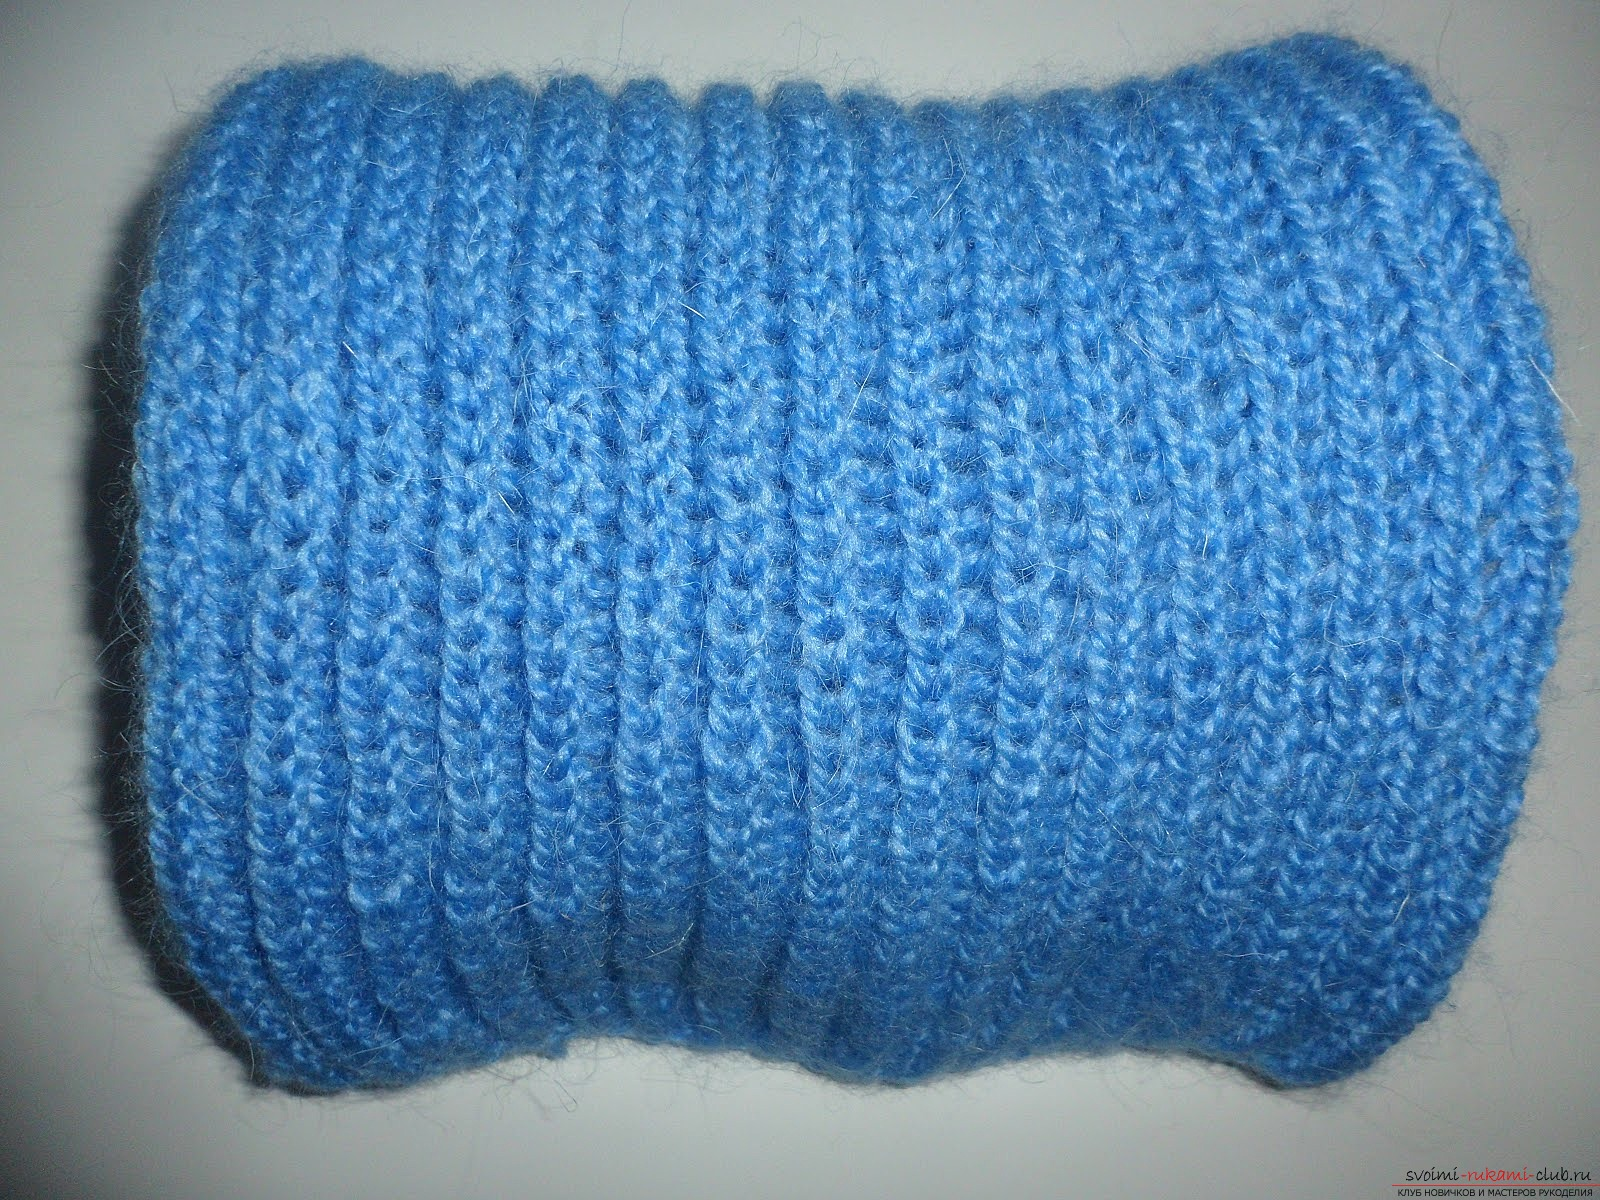 Knitted knitting needles first scarf. Photo №1